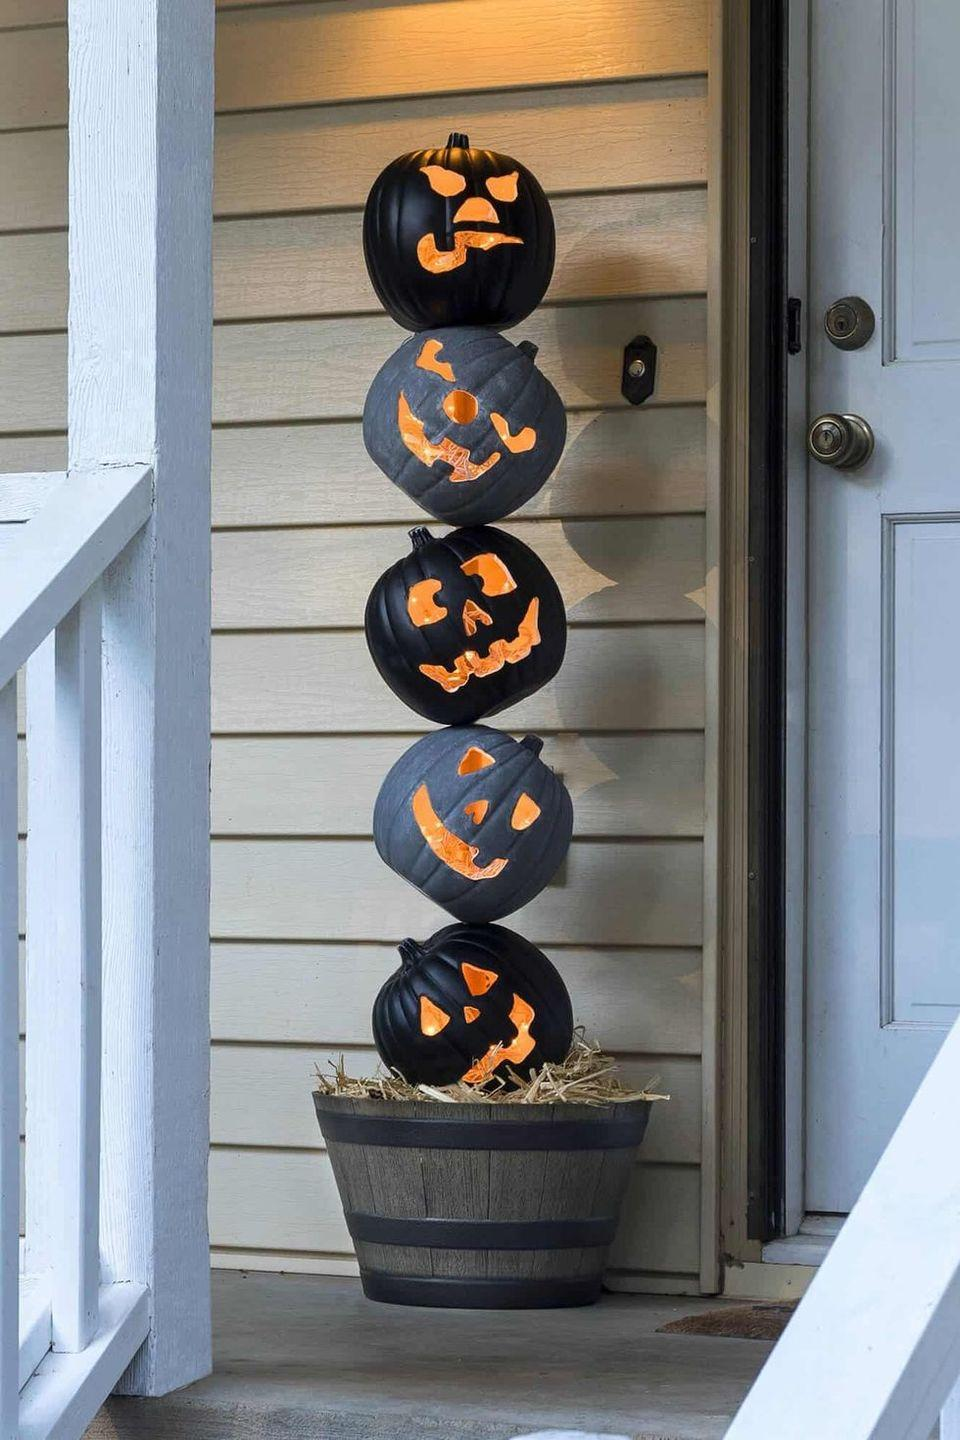 """<p>This delightful pumpkin topiary is a fun way to kick off Halloween week. The addition of twinkle lights within each Jack-o'-lantern really makes the faces come alive.</p><p><strong>Get the tutorial at <a href=""""https://diycandy.com/lighted-halloween-pumpkin-topiary/"""" rel=""""nofollow noopener"""" target=""""_blank"""" data-ylk=""""slk:DIY Candy"""" class=""""link rapid-noclick-resp"""">DIY Candy</a>.</strong></p><p><strong><a class=""""link rapid-noclick-resp"""" href=""""https://go.redirectingat.com?id=74968X1596630&url=https%3A%2F%2Fwww.walmart.com%2Fsearch%2F%3Fquery%3Dcraft%2Bpumpkins&sref=https%3A%2F%2Fwww.thepioneerwoman.com%2Fholidays-celebrations%2Fg32894423%2Foutdoor-halloween-decorations%2F"""" rel=""""nofollow noopener"""" target=""""_blank"""" data-ylk=""""slk:SHOP CRAFT PUMPKINS"""">SHOP CRAFT PUMPKINS</a><br></strong></p>"""